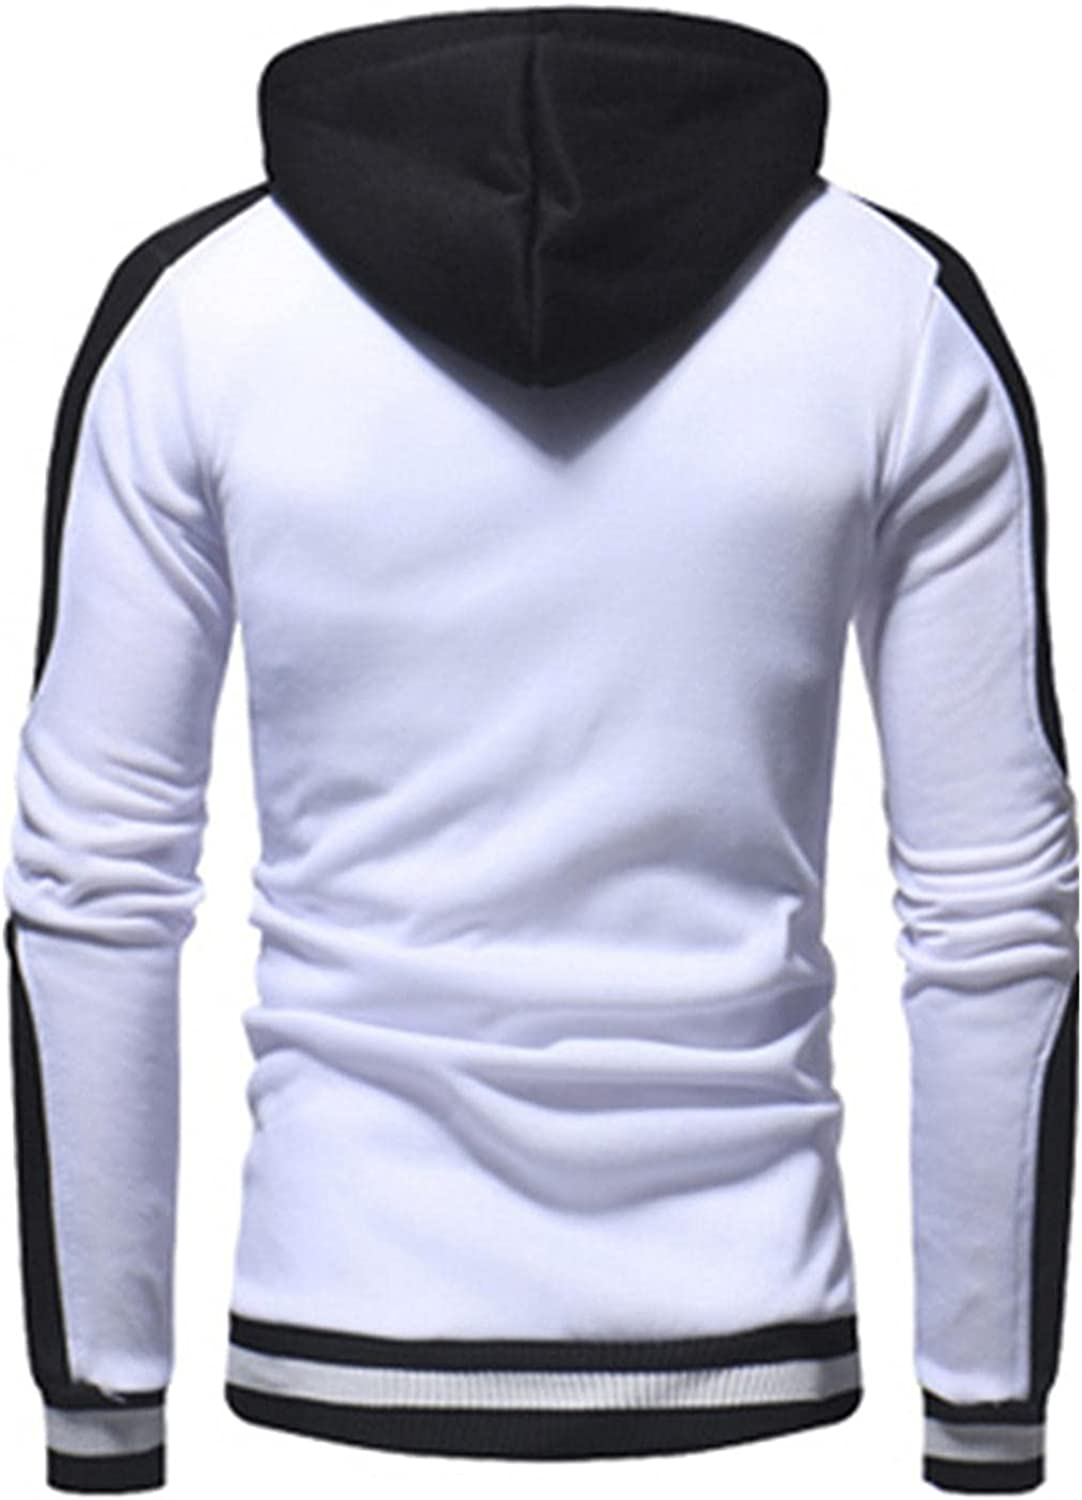 XUNFUN Men's Midweight Hooded Sweatshirt Hipster Gym Long Sleeve Drawstring Casual Color Block Pullover Hoodies with Pocket